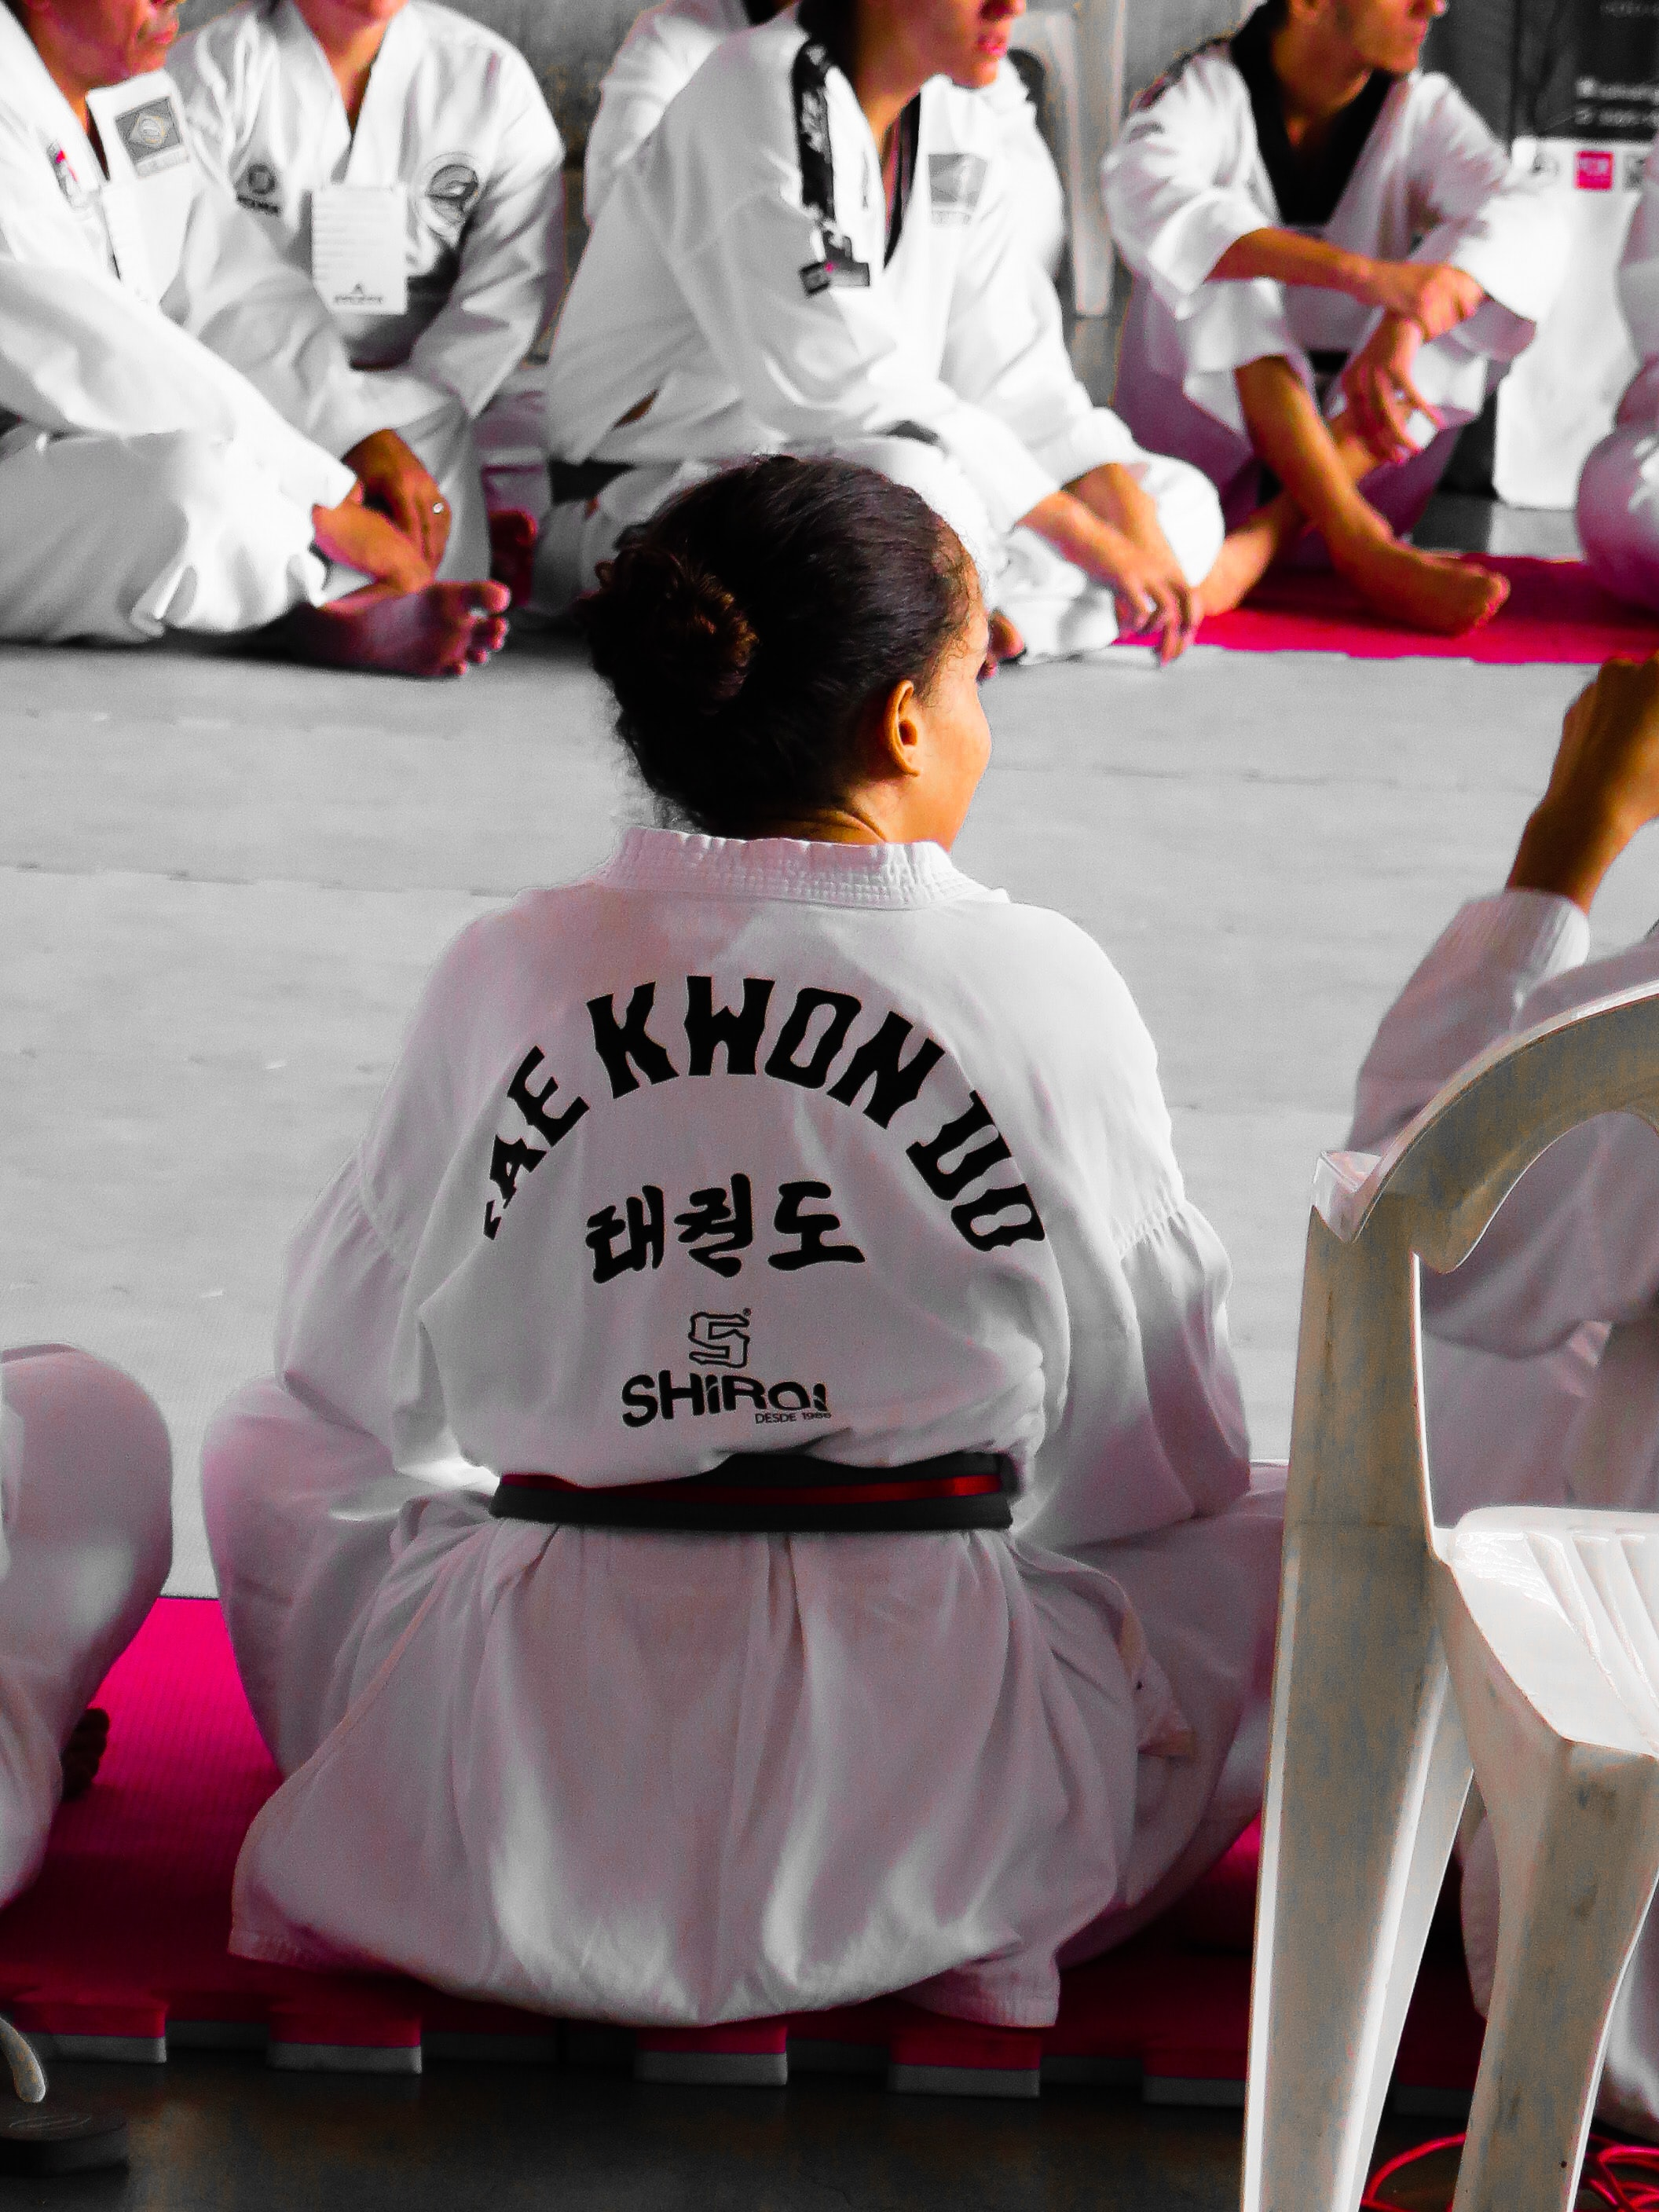 girl wearing karate gi sitting on pink puzzle mat